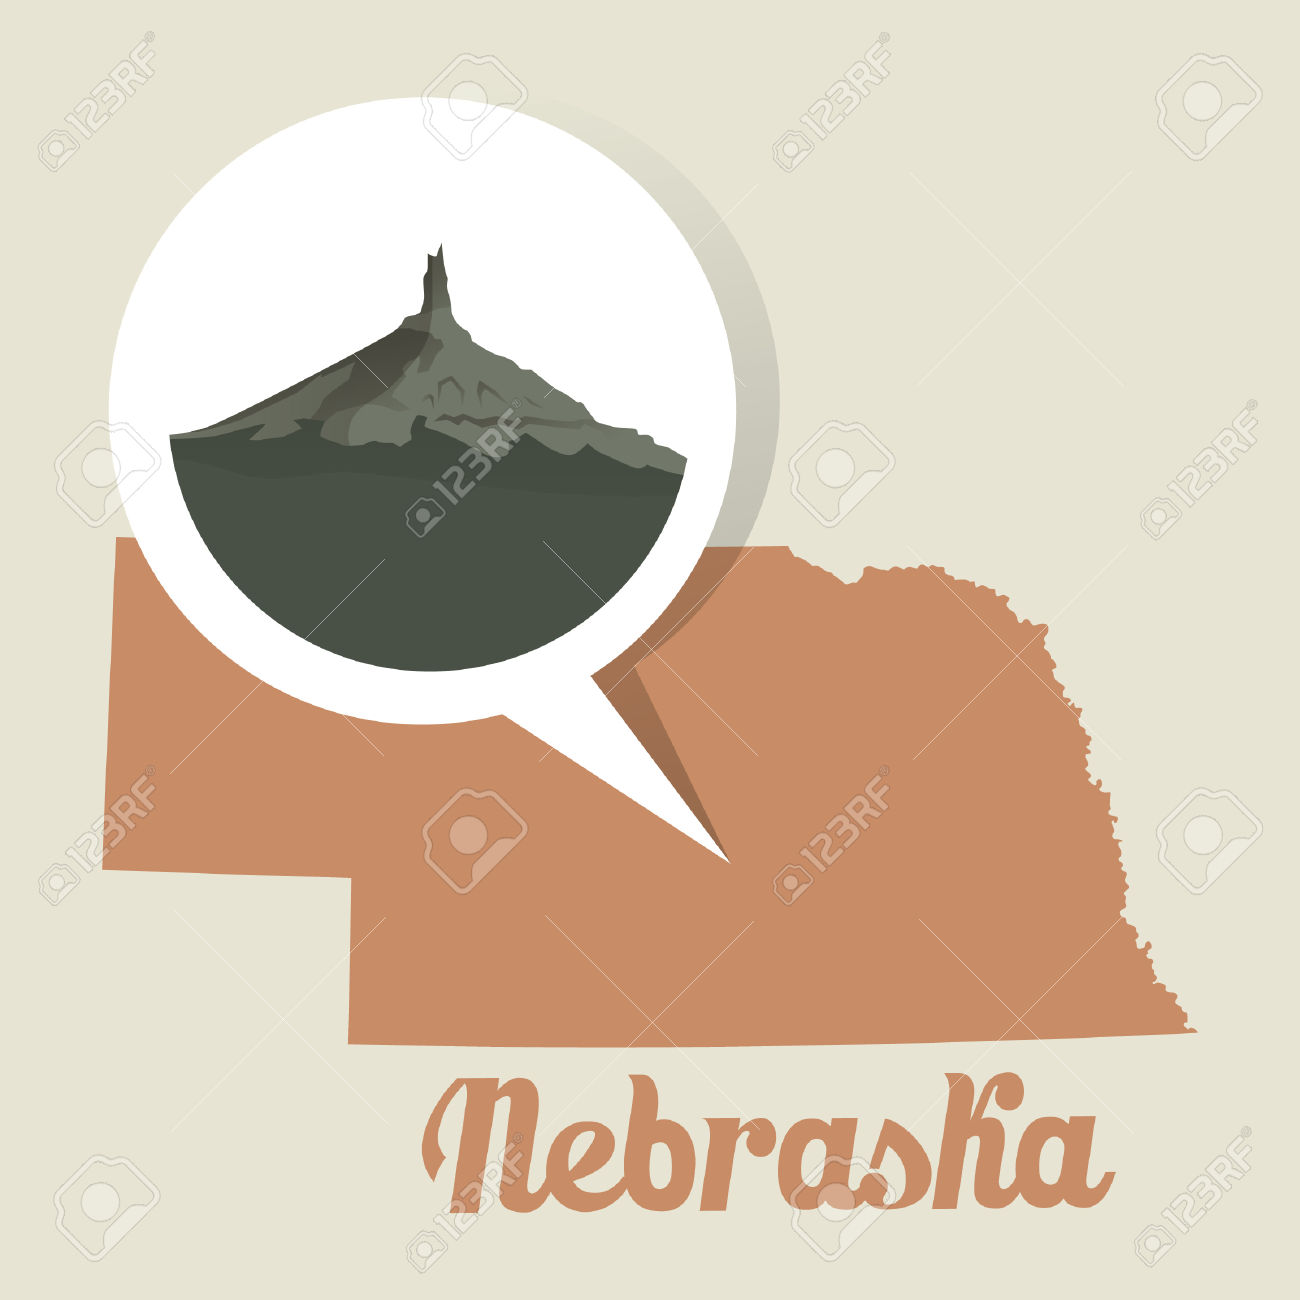 Nebraska Map With Chimney Rock Icon Royalty Free Cliparts, Vectors.